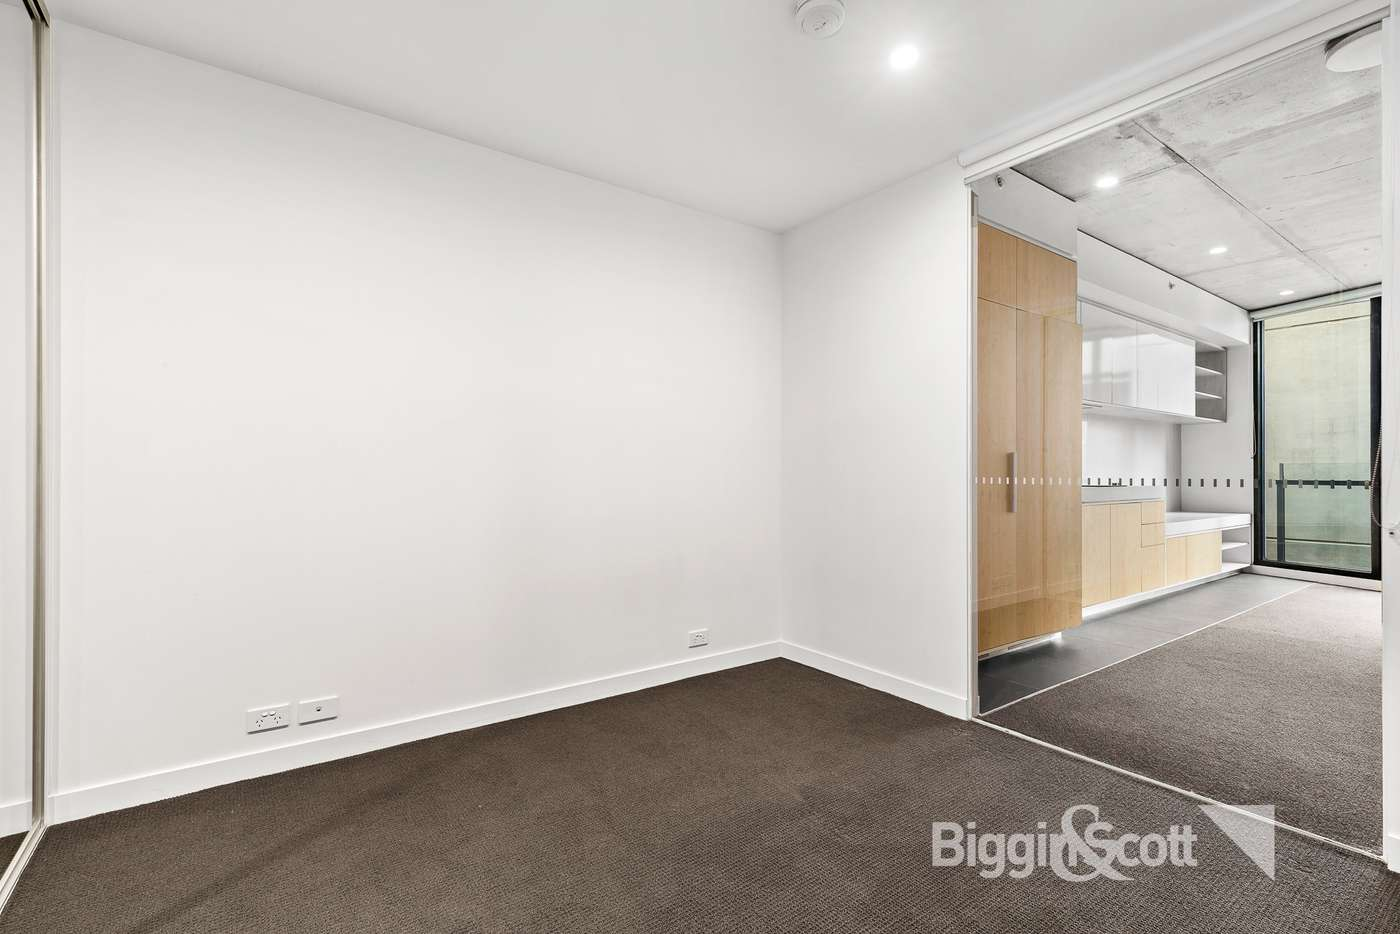 Sixth view of Homely apartment listing, 304/33 Claremont Street, South Yarra VIC 3141